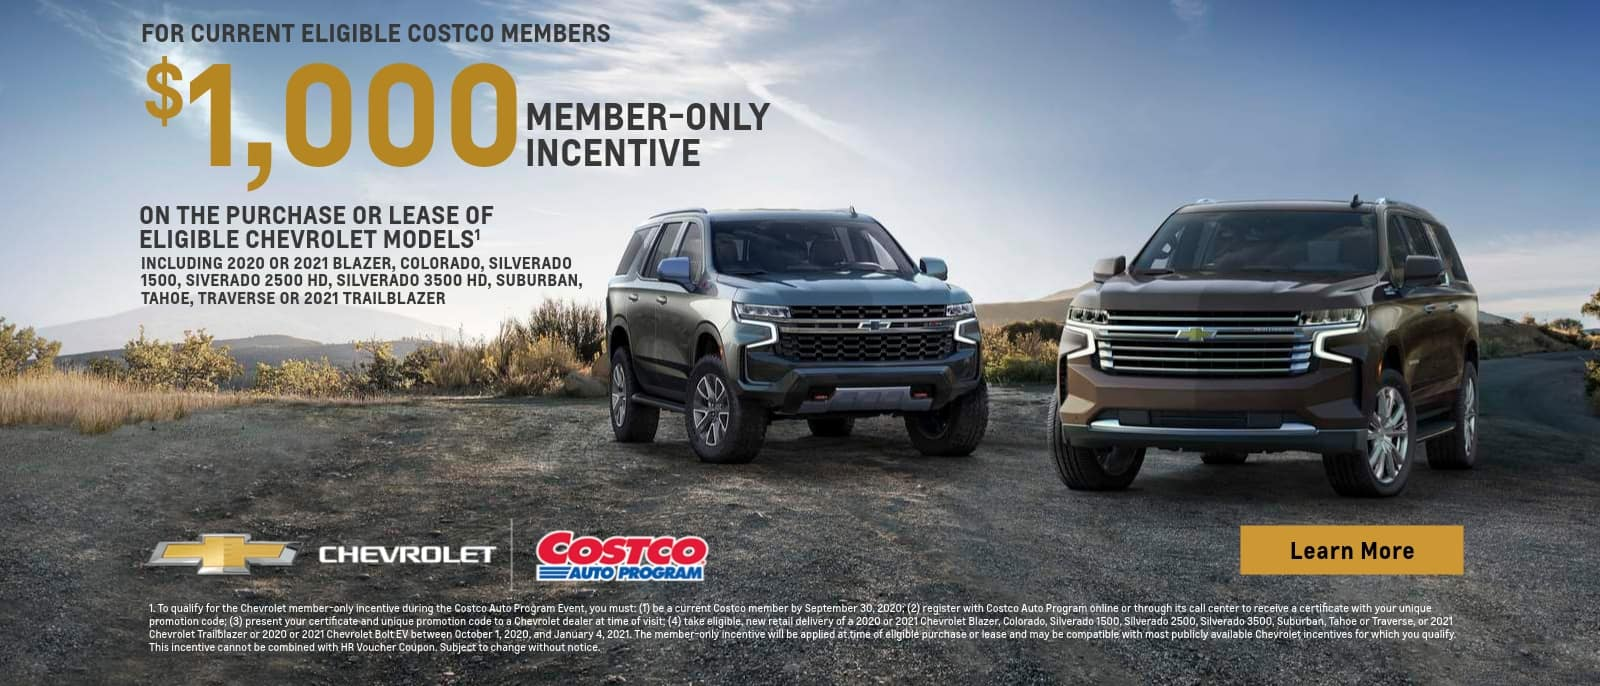 Costco Chevrolet Offer